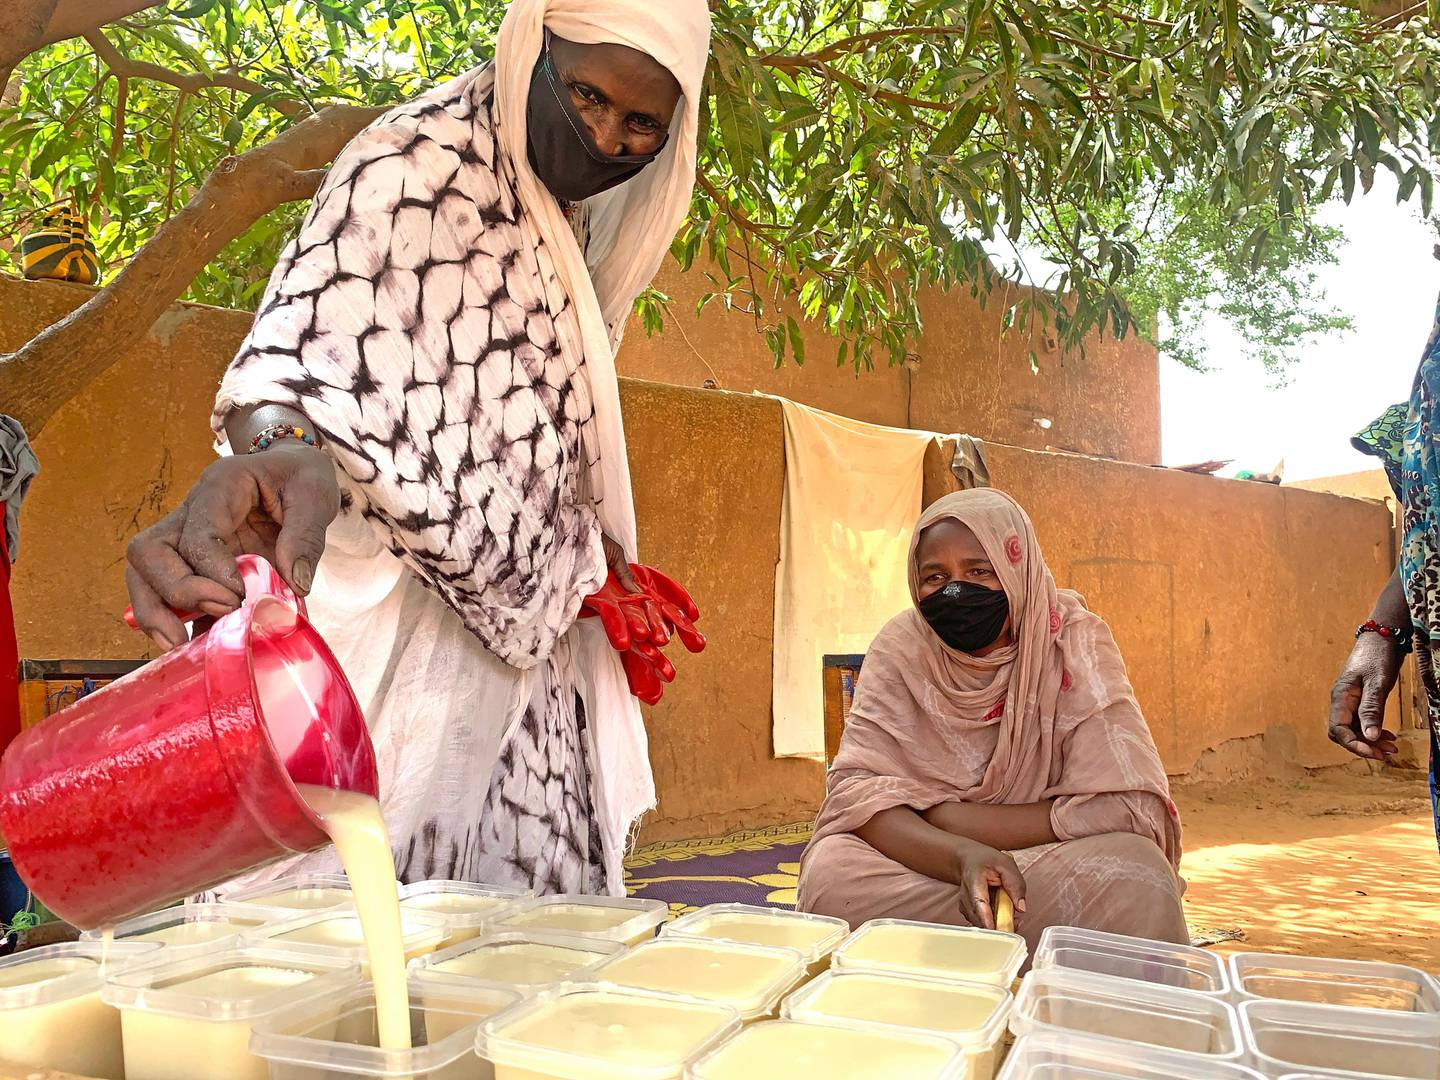 Every week, the soap factory produces about 30 pieces of soap that these women from the Tuareg refugee community sell to the population. ; In Hamdallaye, in Diffa (Sayam Forage camp) but also in Niamey, Tillabéry and Ouallam, refugees have  been trained to make soap (pieces and liquid) and bleach in the past within the framework of UNHCR projects. This activity generates income but is also part of the national fight against the coronavirus. ; This image, video, audio or multimedia is copyrighted and may only be reproduced with permission from authorised staff at UNHCR. Images, video, audio and multimedia may only be used under licence for editorial use relating to UNHCR-supported issues and only where the content of the media is accurately represented and captioned. Use in a commercial or promotional context or for fundraising is not allowed without UNHCR's consent. A credit is always required in the format '© UNHCR/Photographer' for photo images and '© UNHCR' for video, audio and multimedia unless stated otherwise.